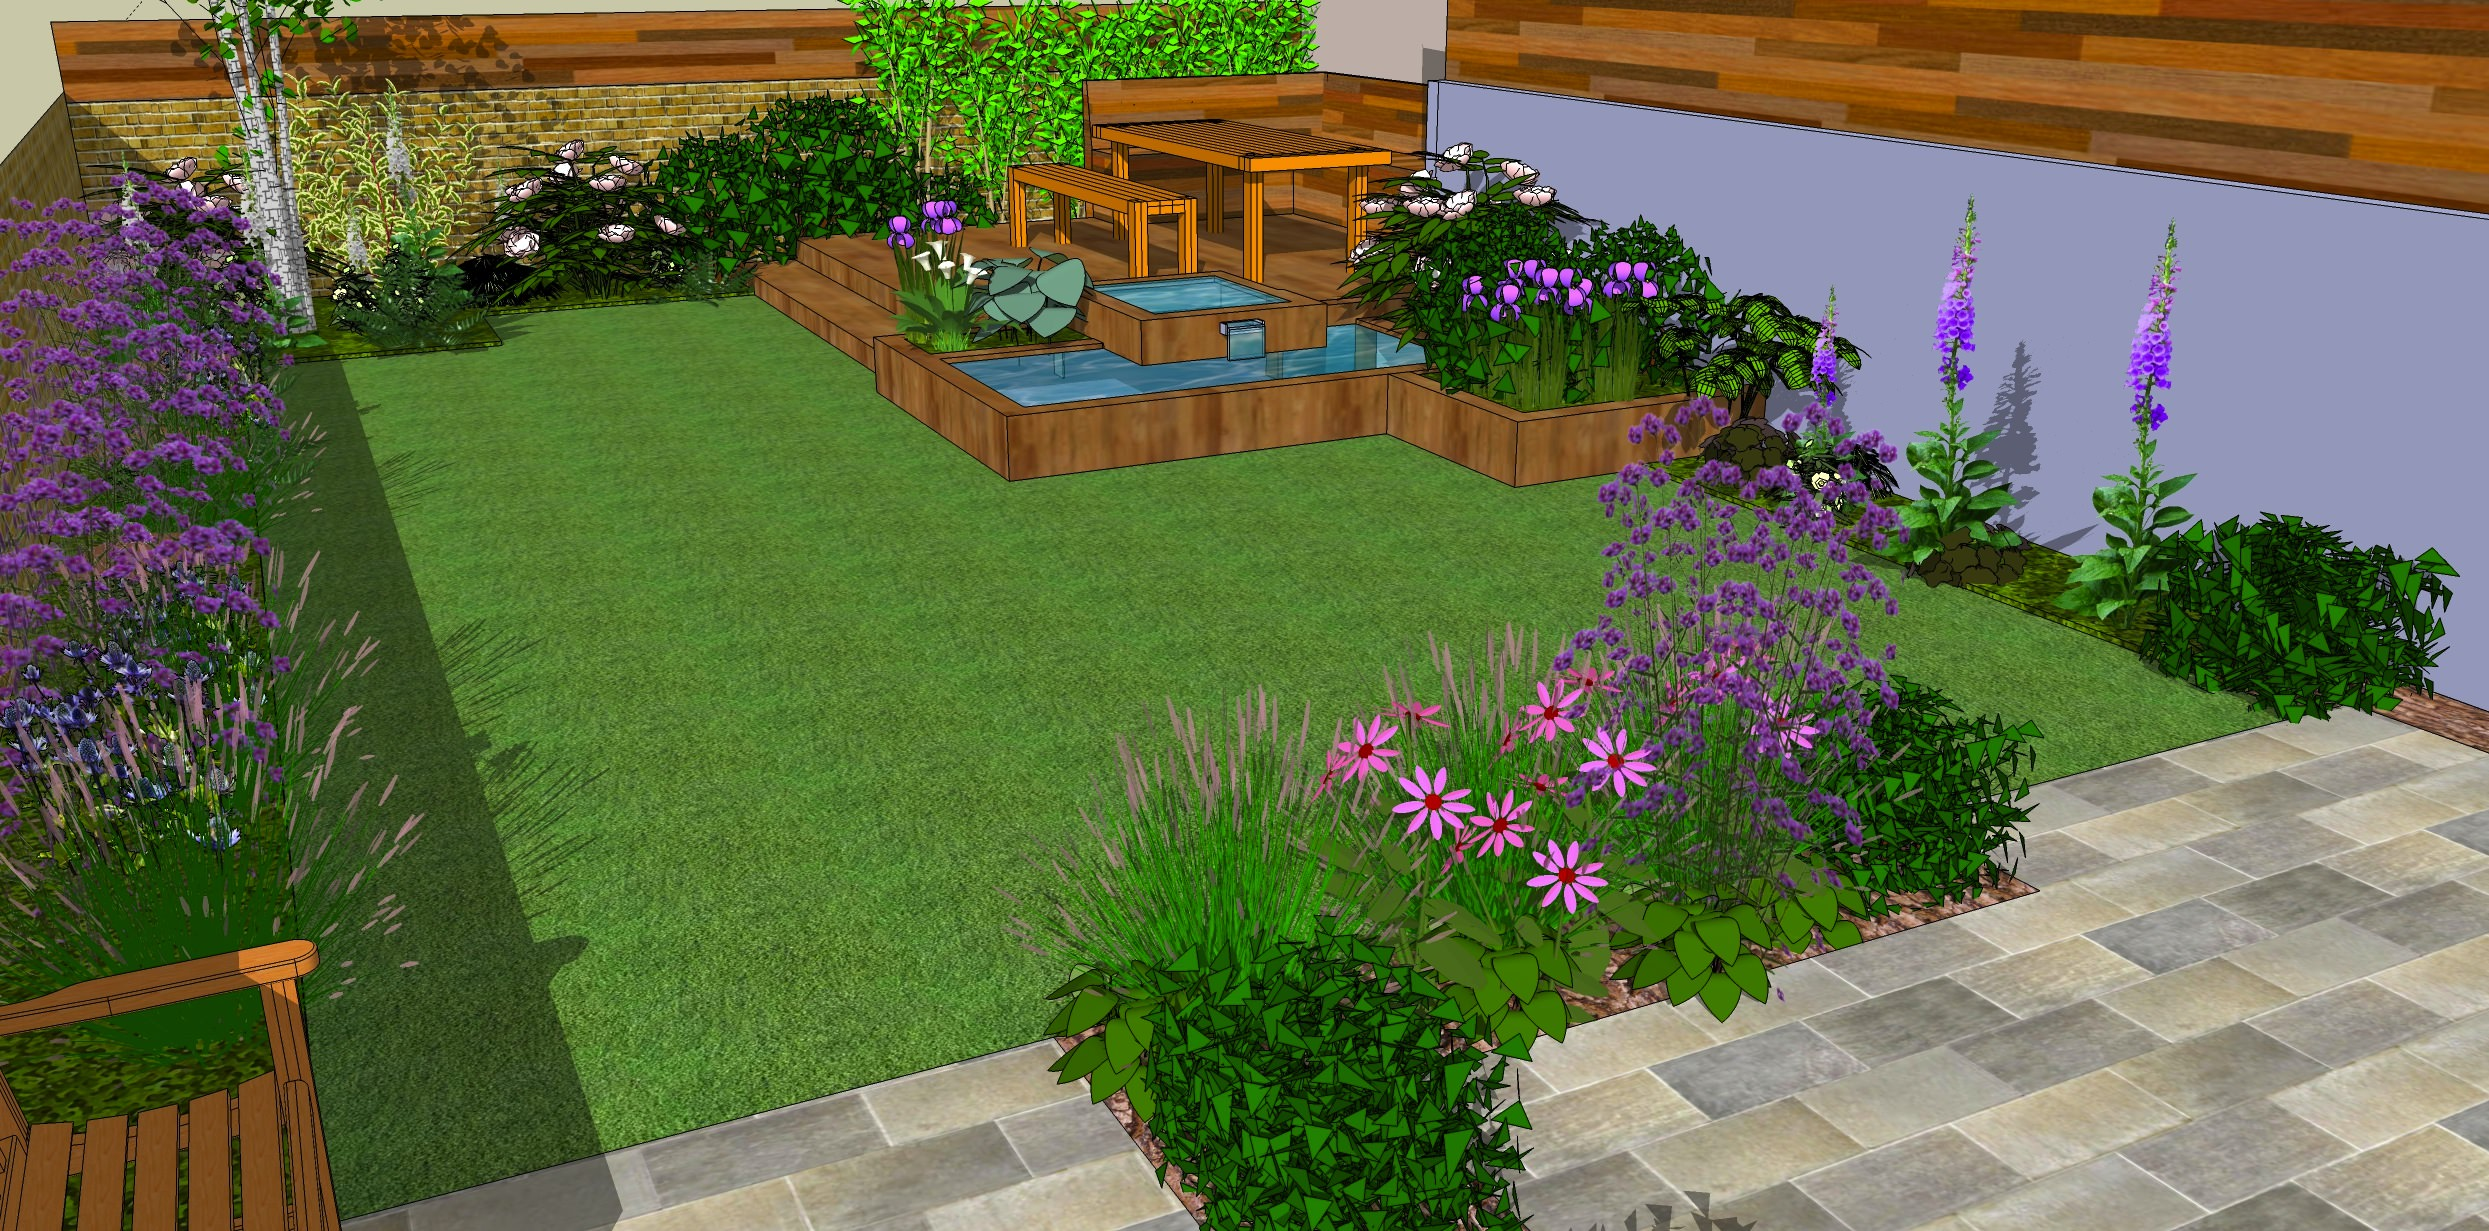 Low Maintenance garden designs - Garden Club London on Patio And Grass Garden Ideas id=15874